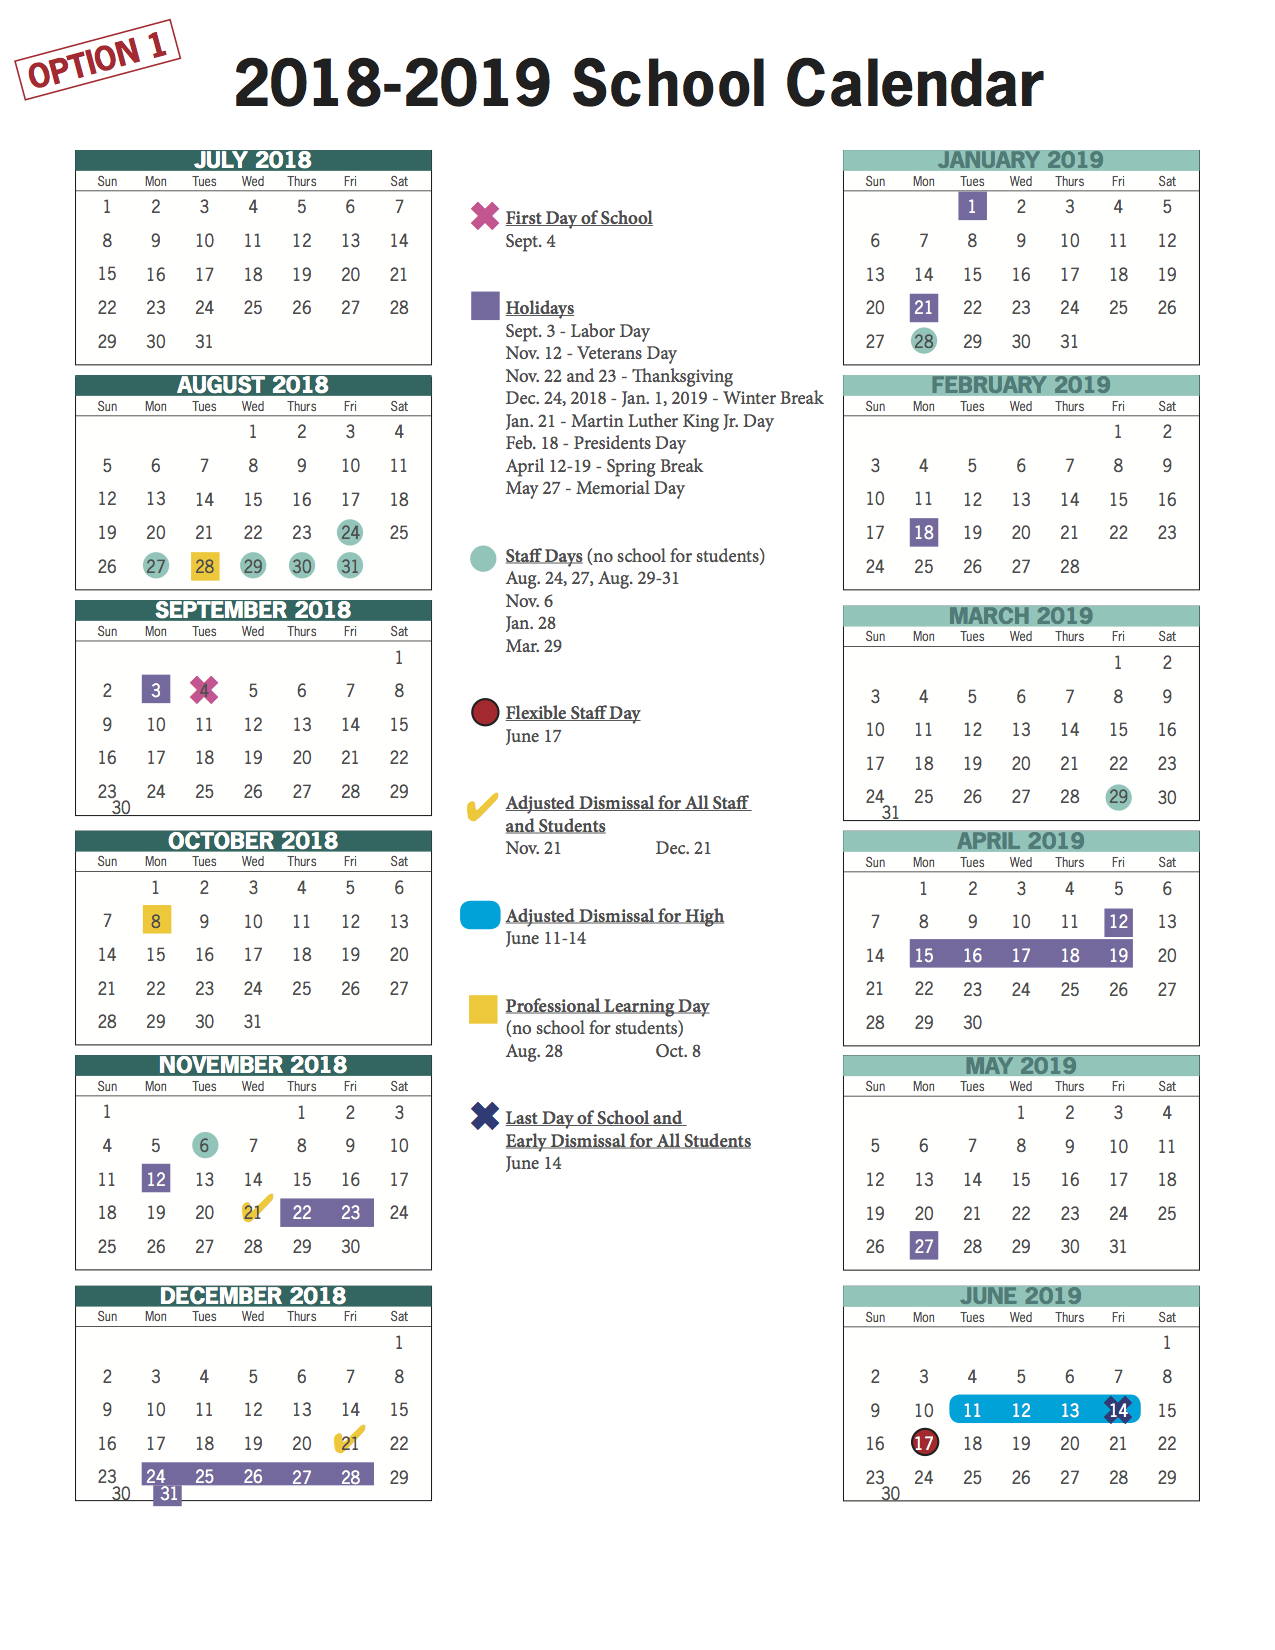 Vbcps E-Town Hall - 2018-2019 And 2019-2020 School Calendar Review